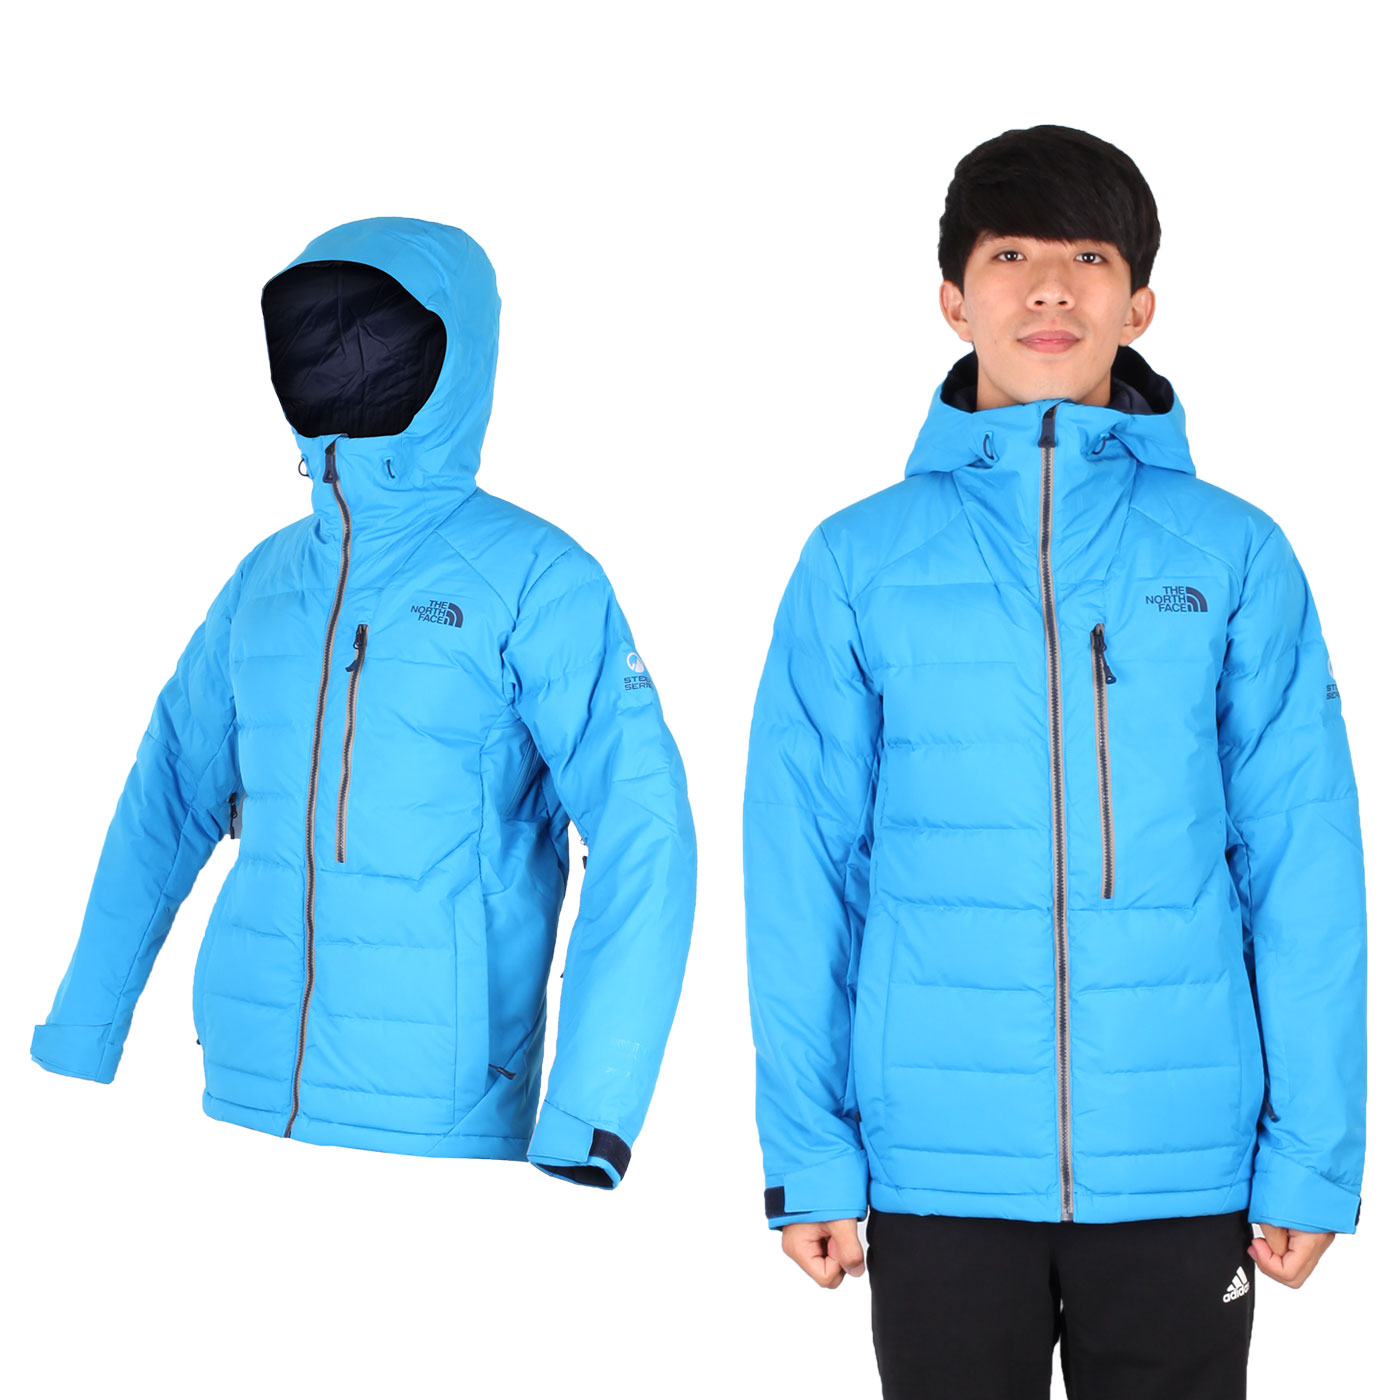 THE NORTH FACE 男WS 700 FILL羽絨外套-防風